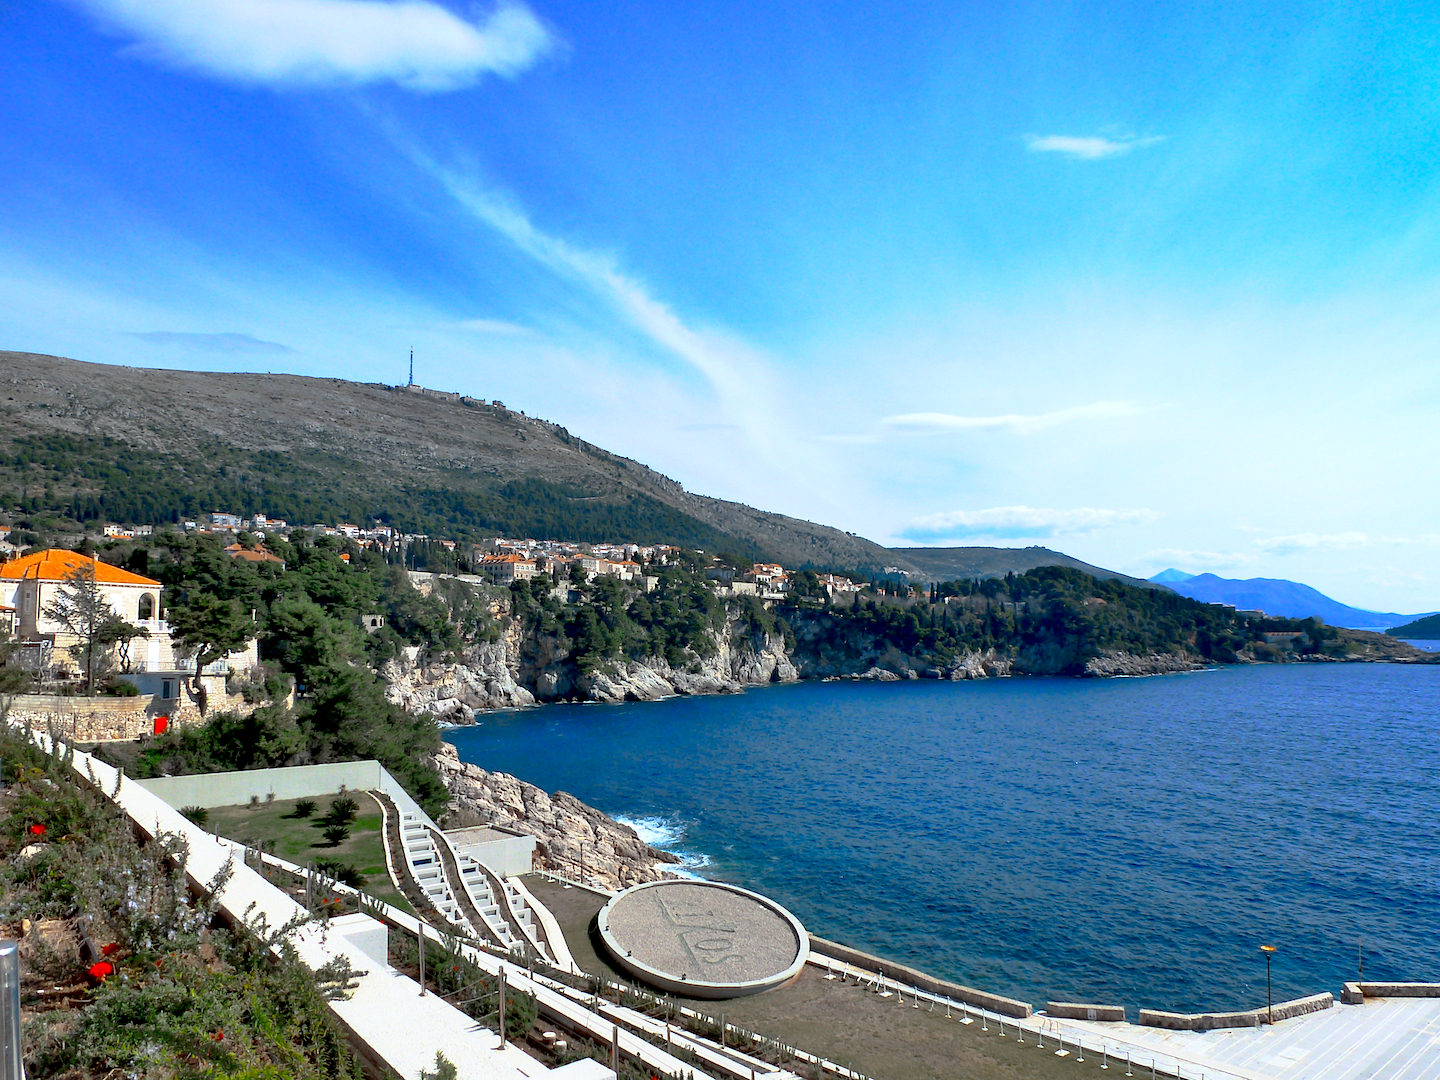 Our spectacular view from the balcony at the Rixos Libertas Hotel.